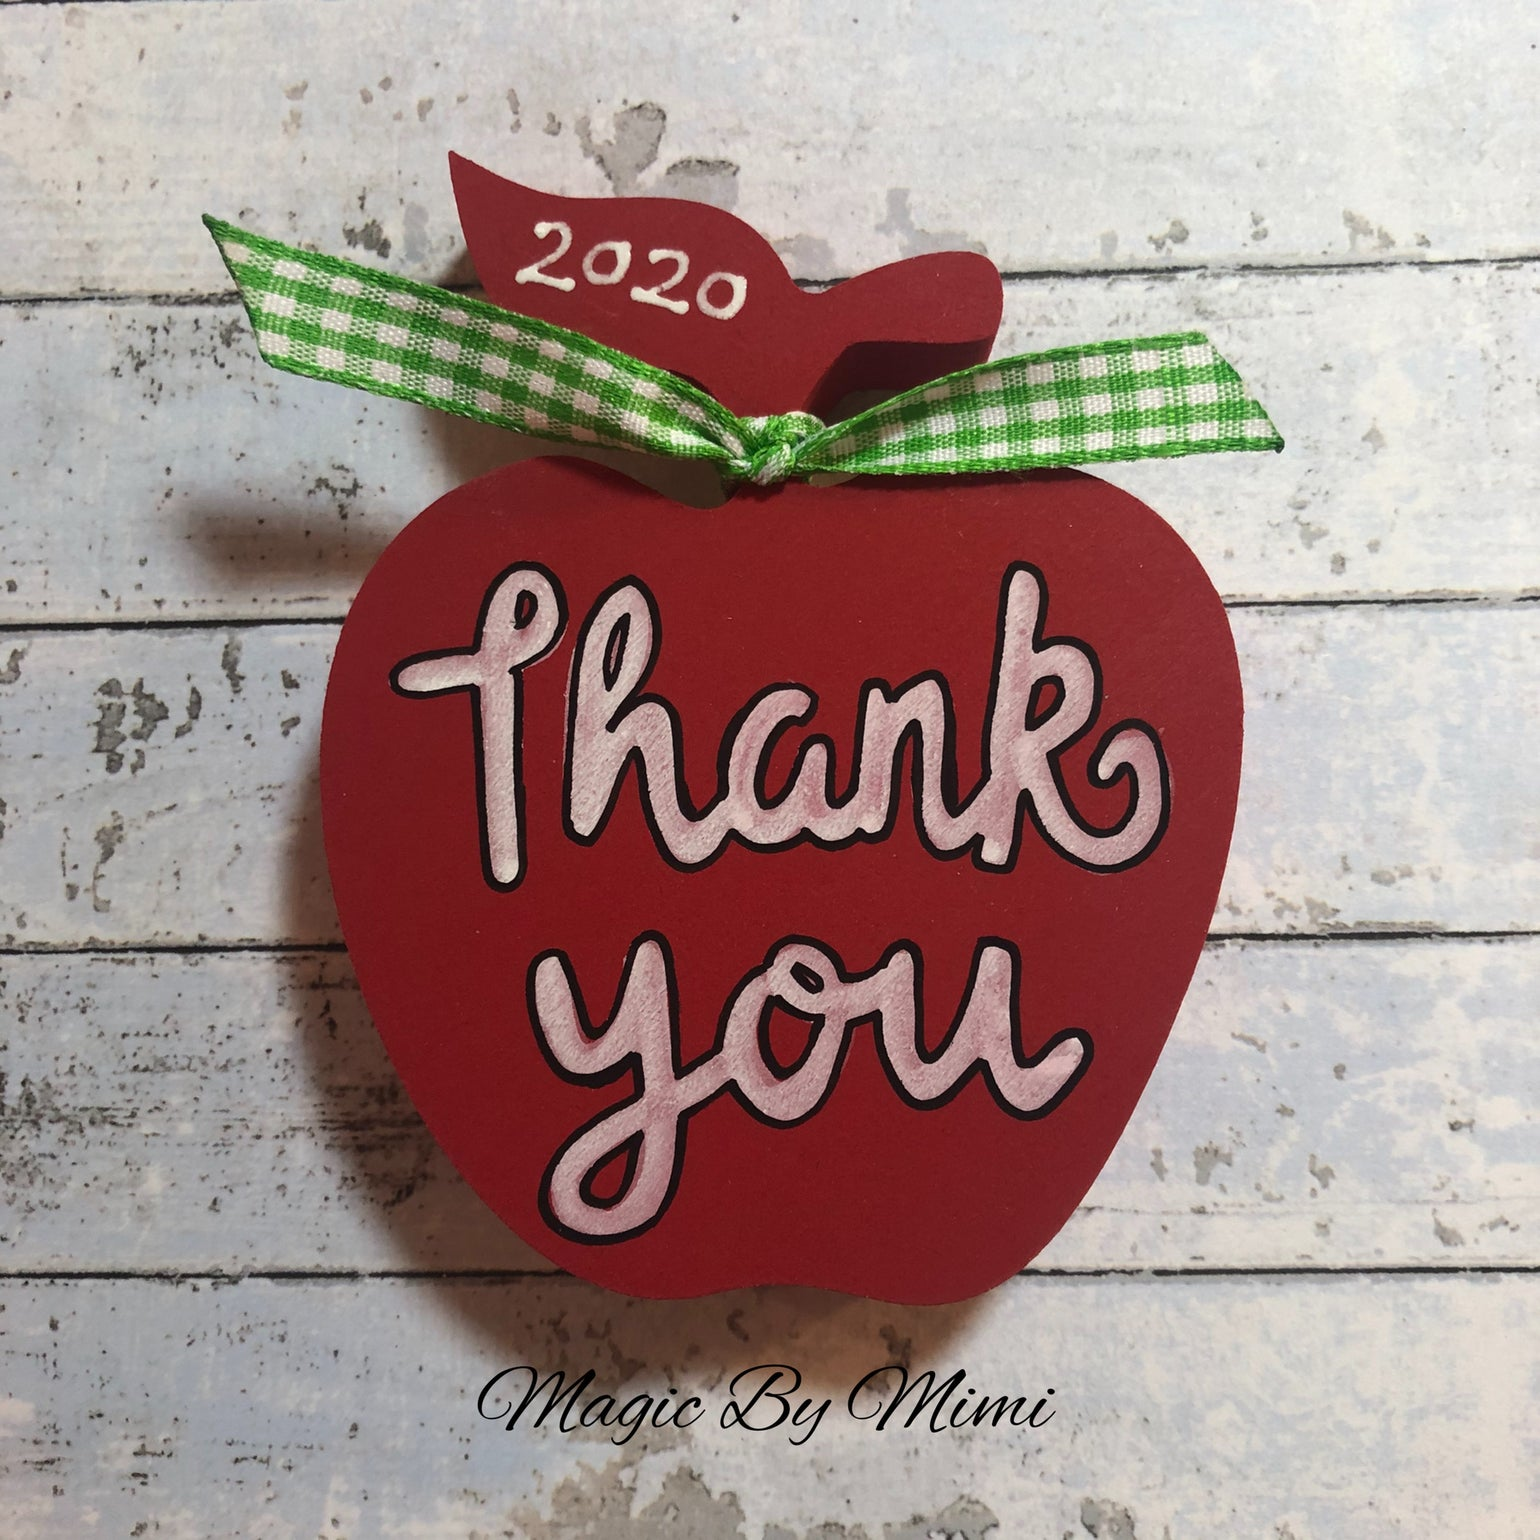 Image of Thank You Apple